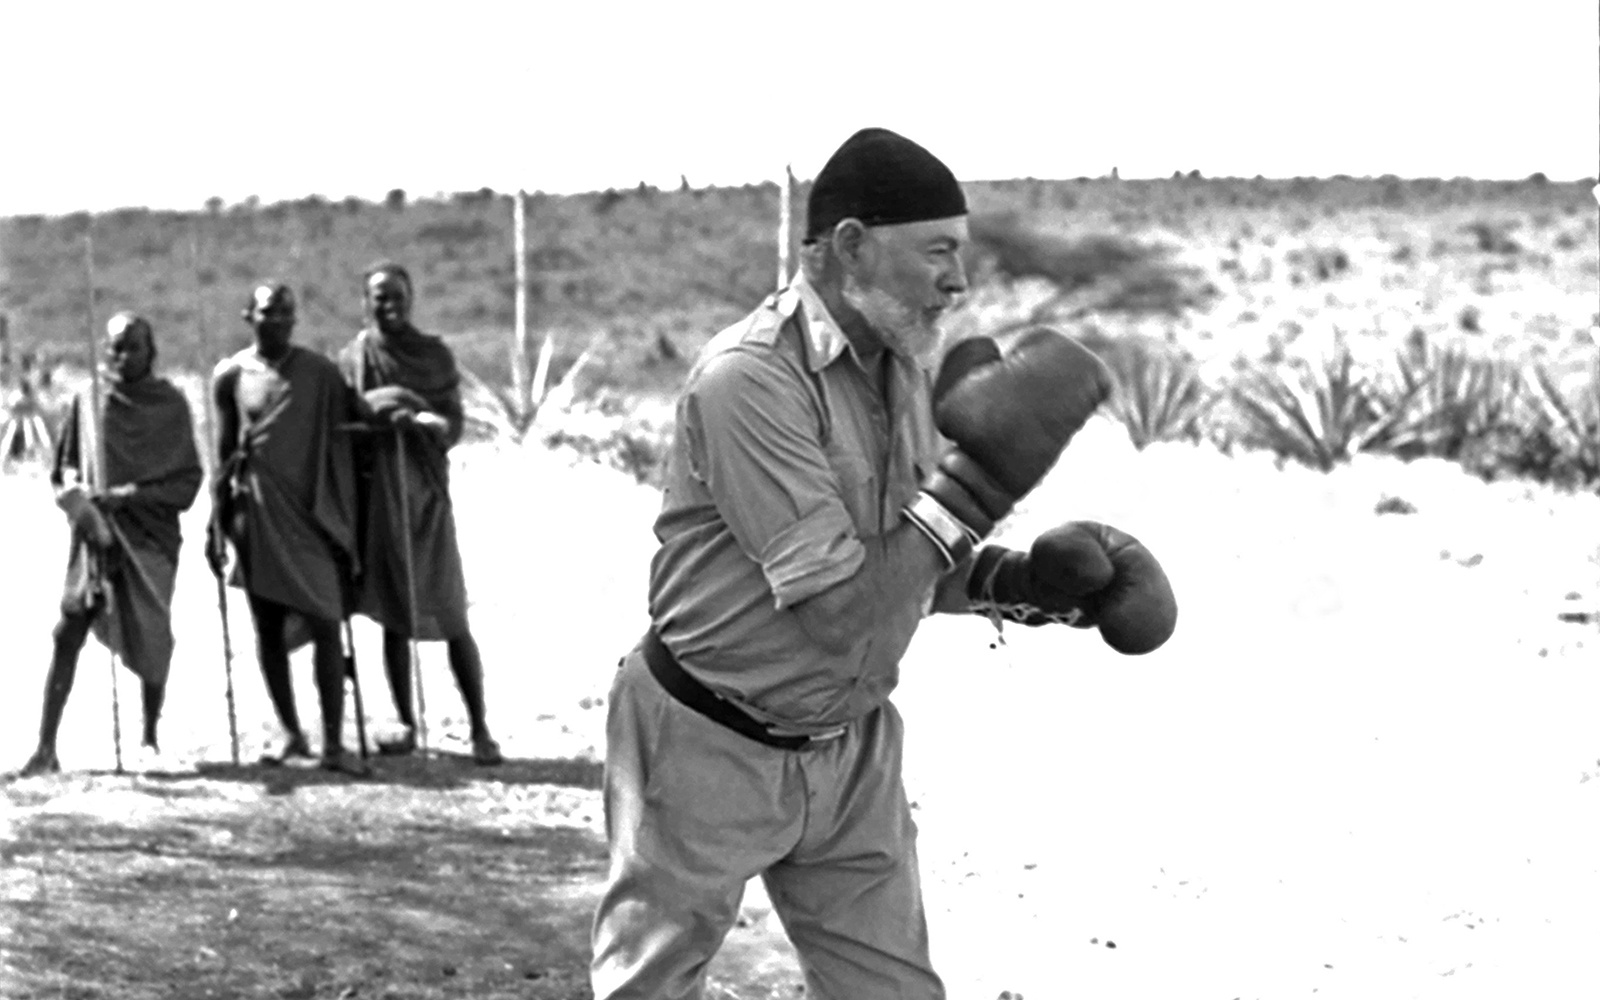 KENYA - SEPTEMBER 1952:  Author Ernest Hemingway keeps fit by boxing while on a big game hunt in September 1952 in Kenya.  (Photo by Earl Theisen/Getty Images)